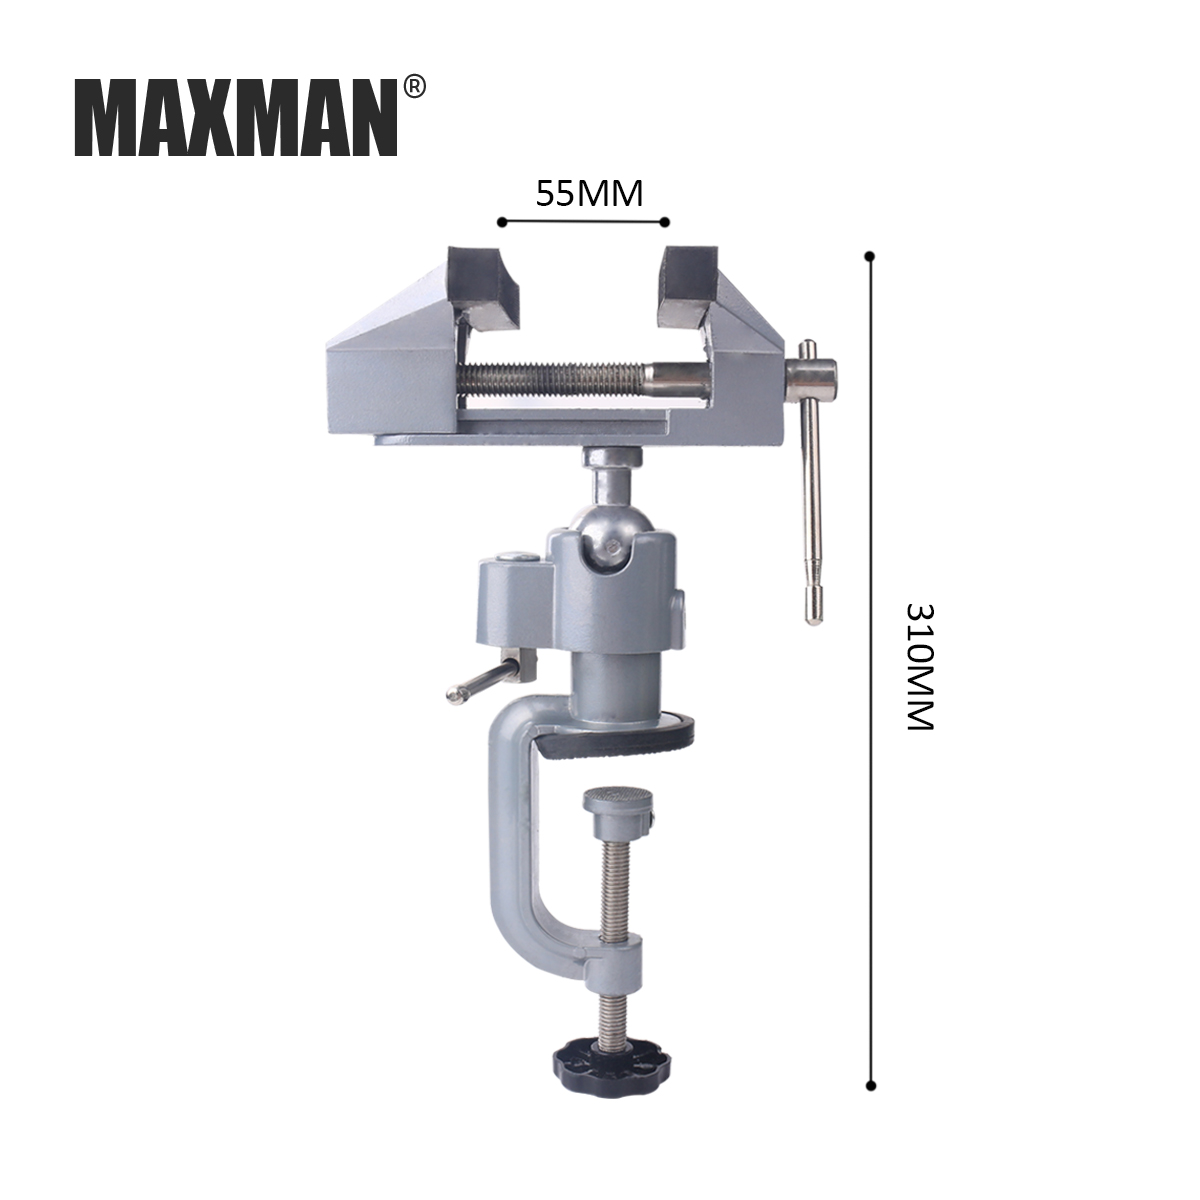 MAXMAN TOOLS Bench Vise Aluminum 75mm Table Screw Vise Bench Clamp Screw Vise for DIY Craft Mold Fixed Repair Tool mini table vice adjustable max 37mm plastic screw bench vise for diy jewelry craft repair tools dremel power tools accessories